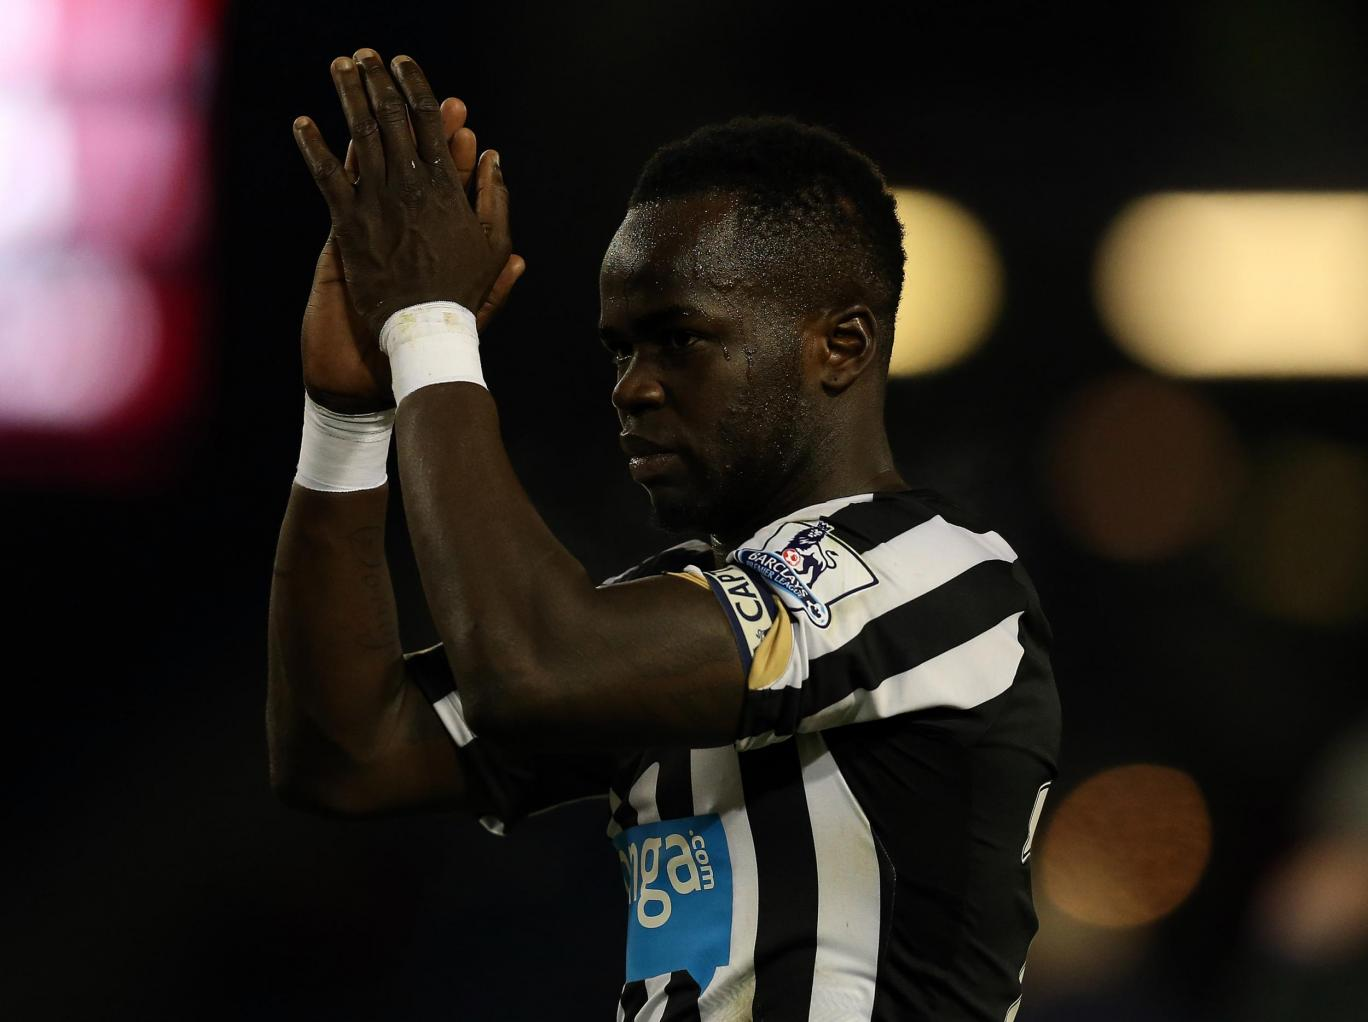 Cheick Tiote dead: Collapses During Beijing Enterprises Training Session